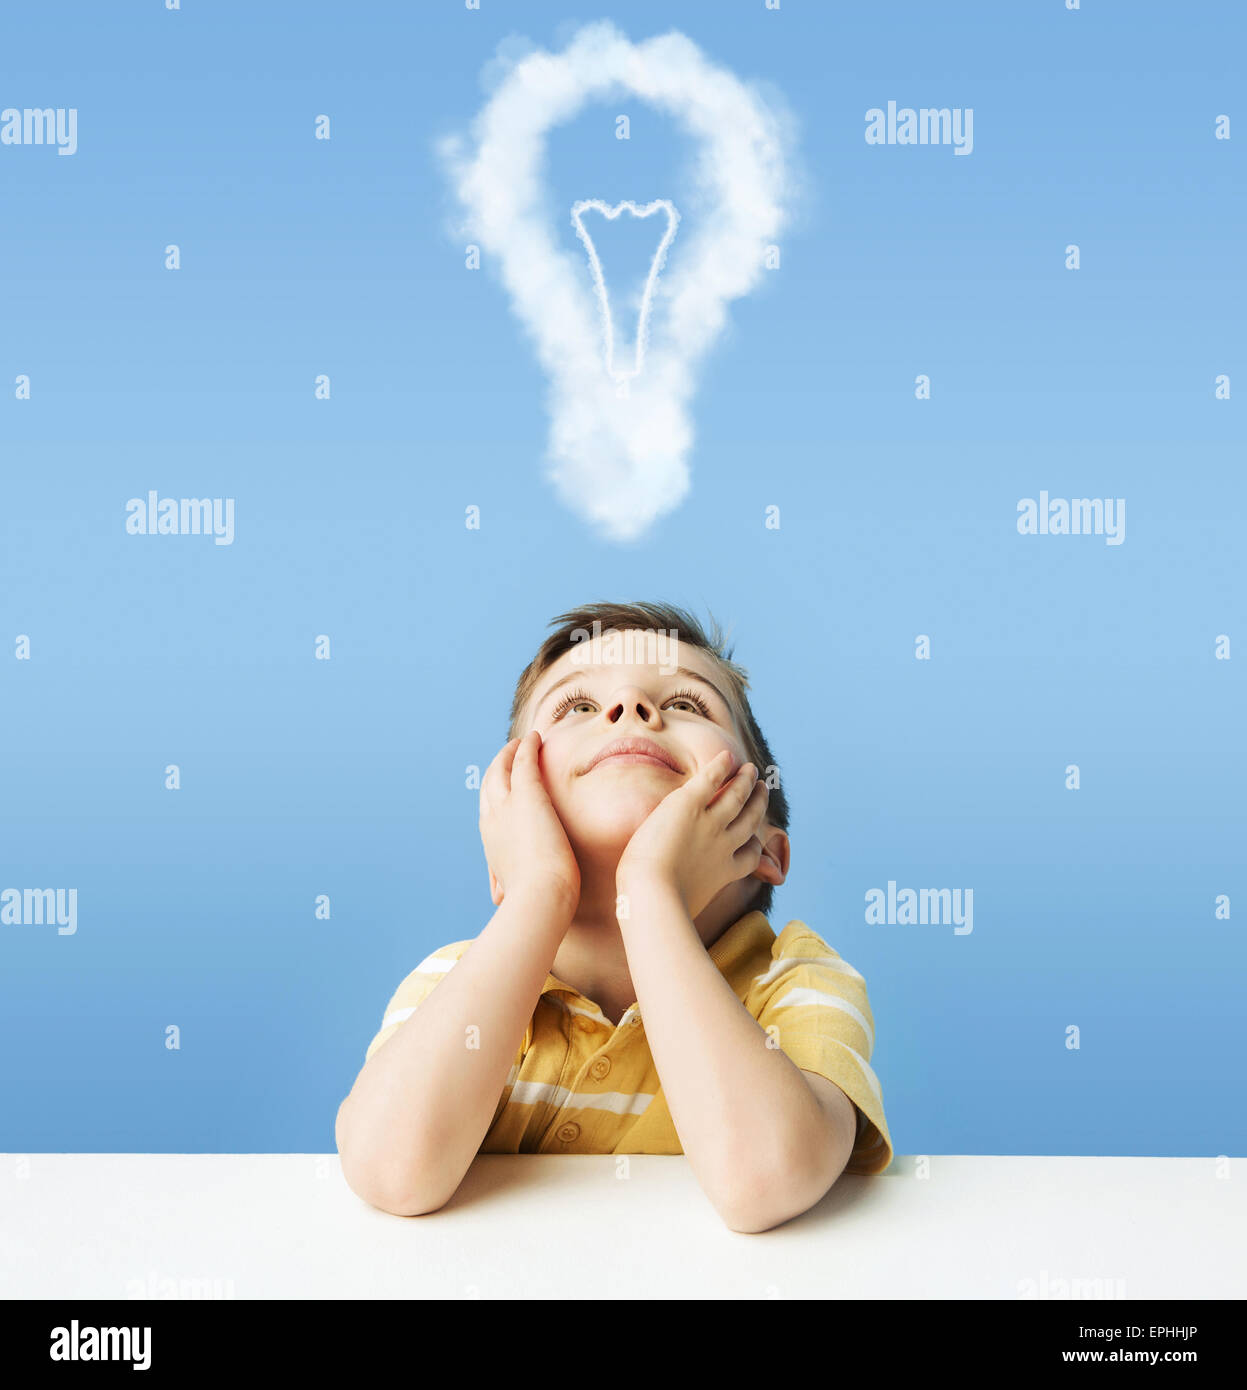 Little kid dreaming about a light bulb - Stock Image